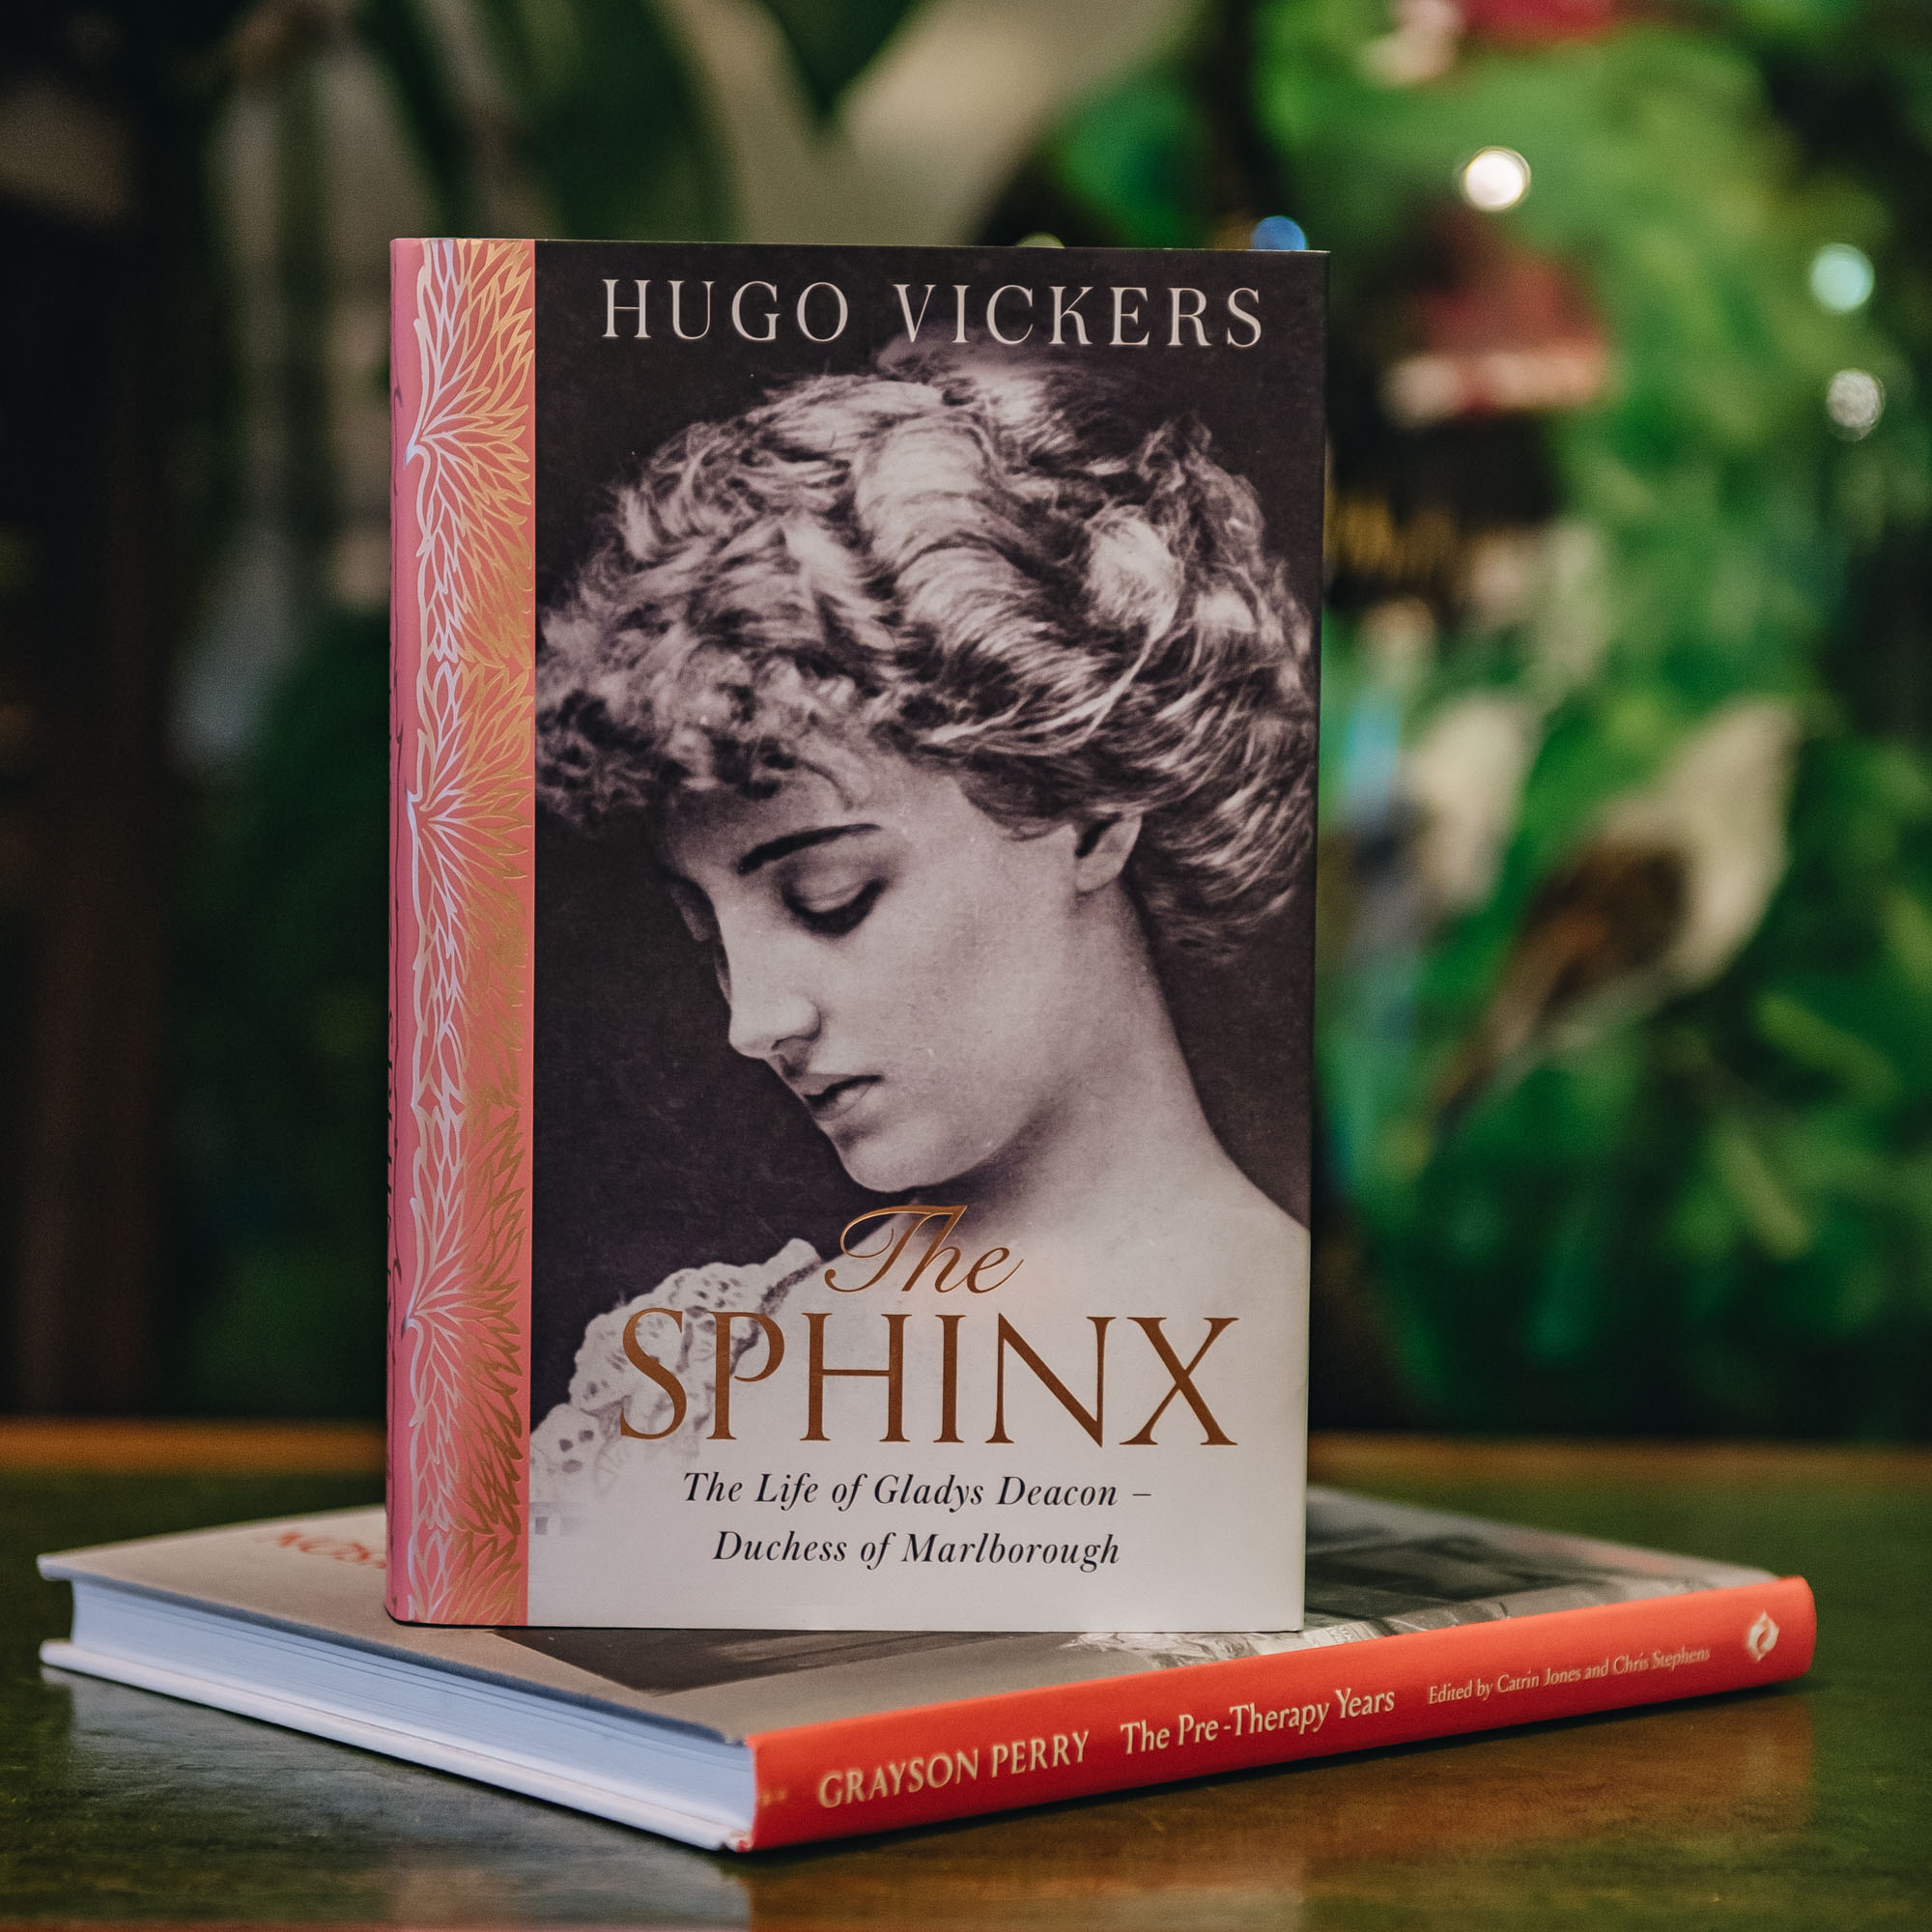 A special event in tribute of The Sphinx book release by Hugo Vickers